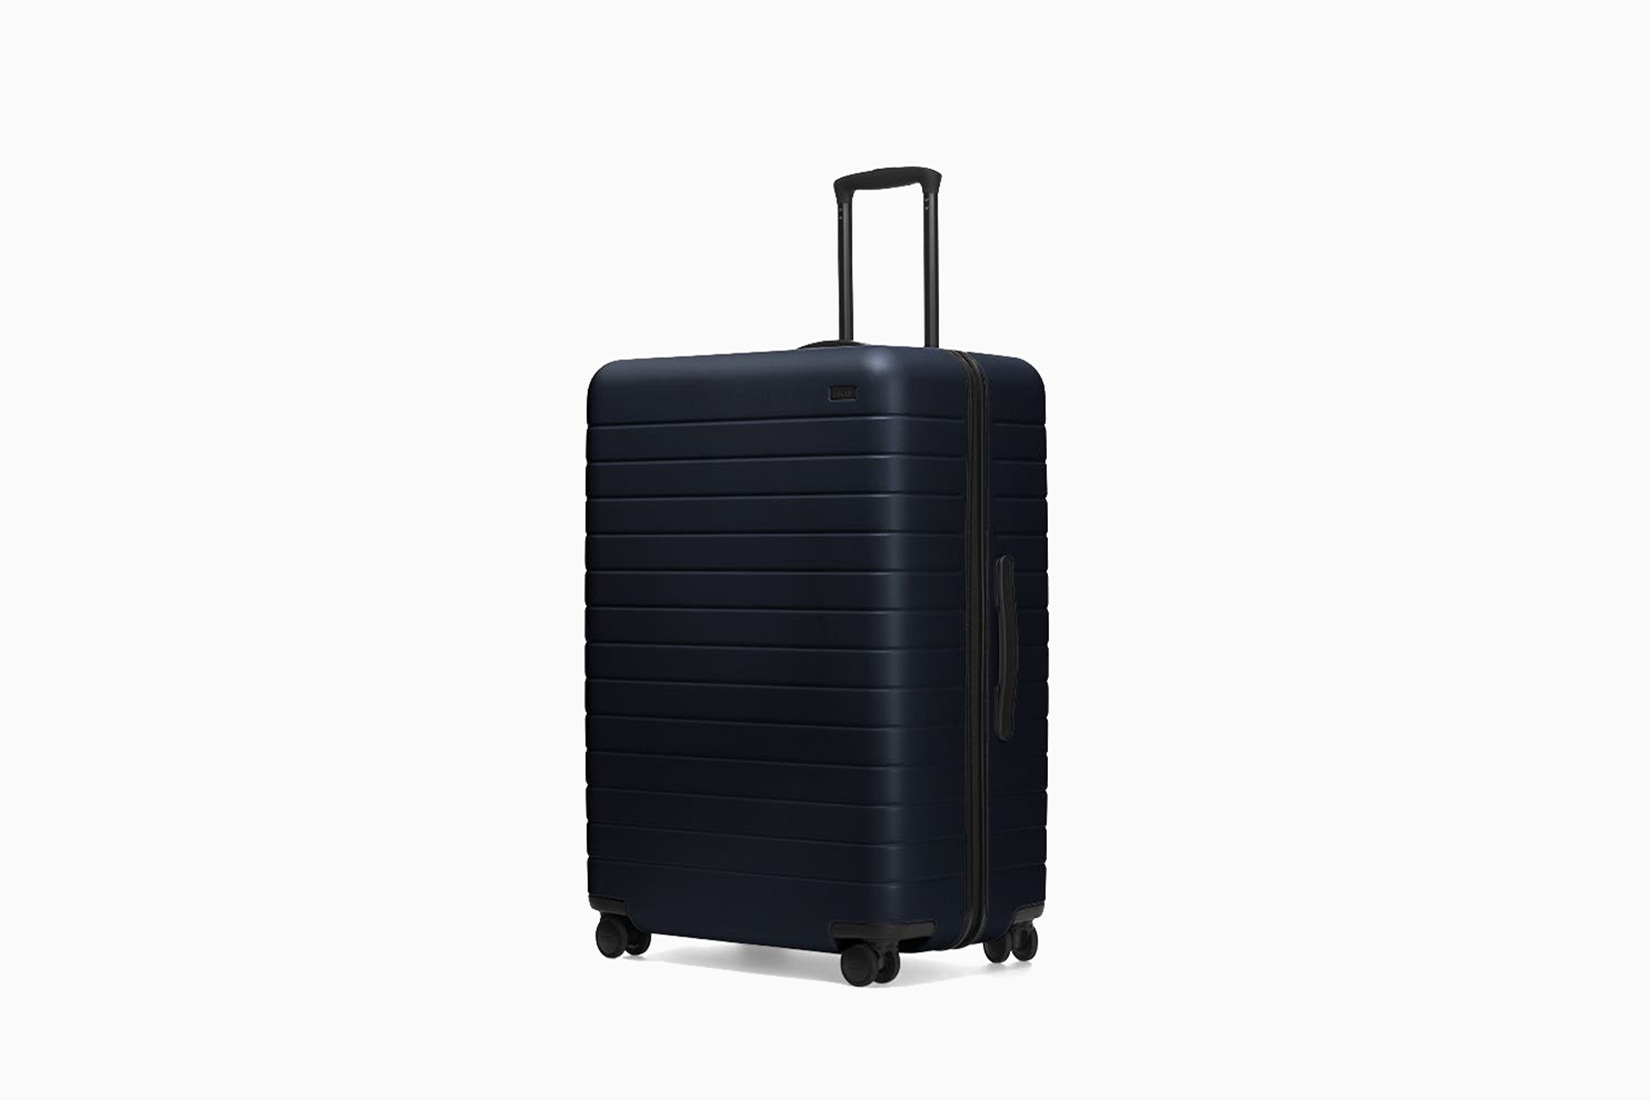 best luggage brands suitcase away - Luxe Digital